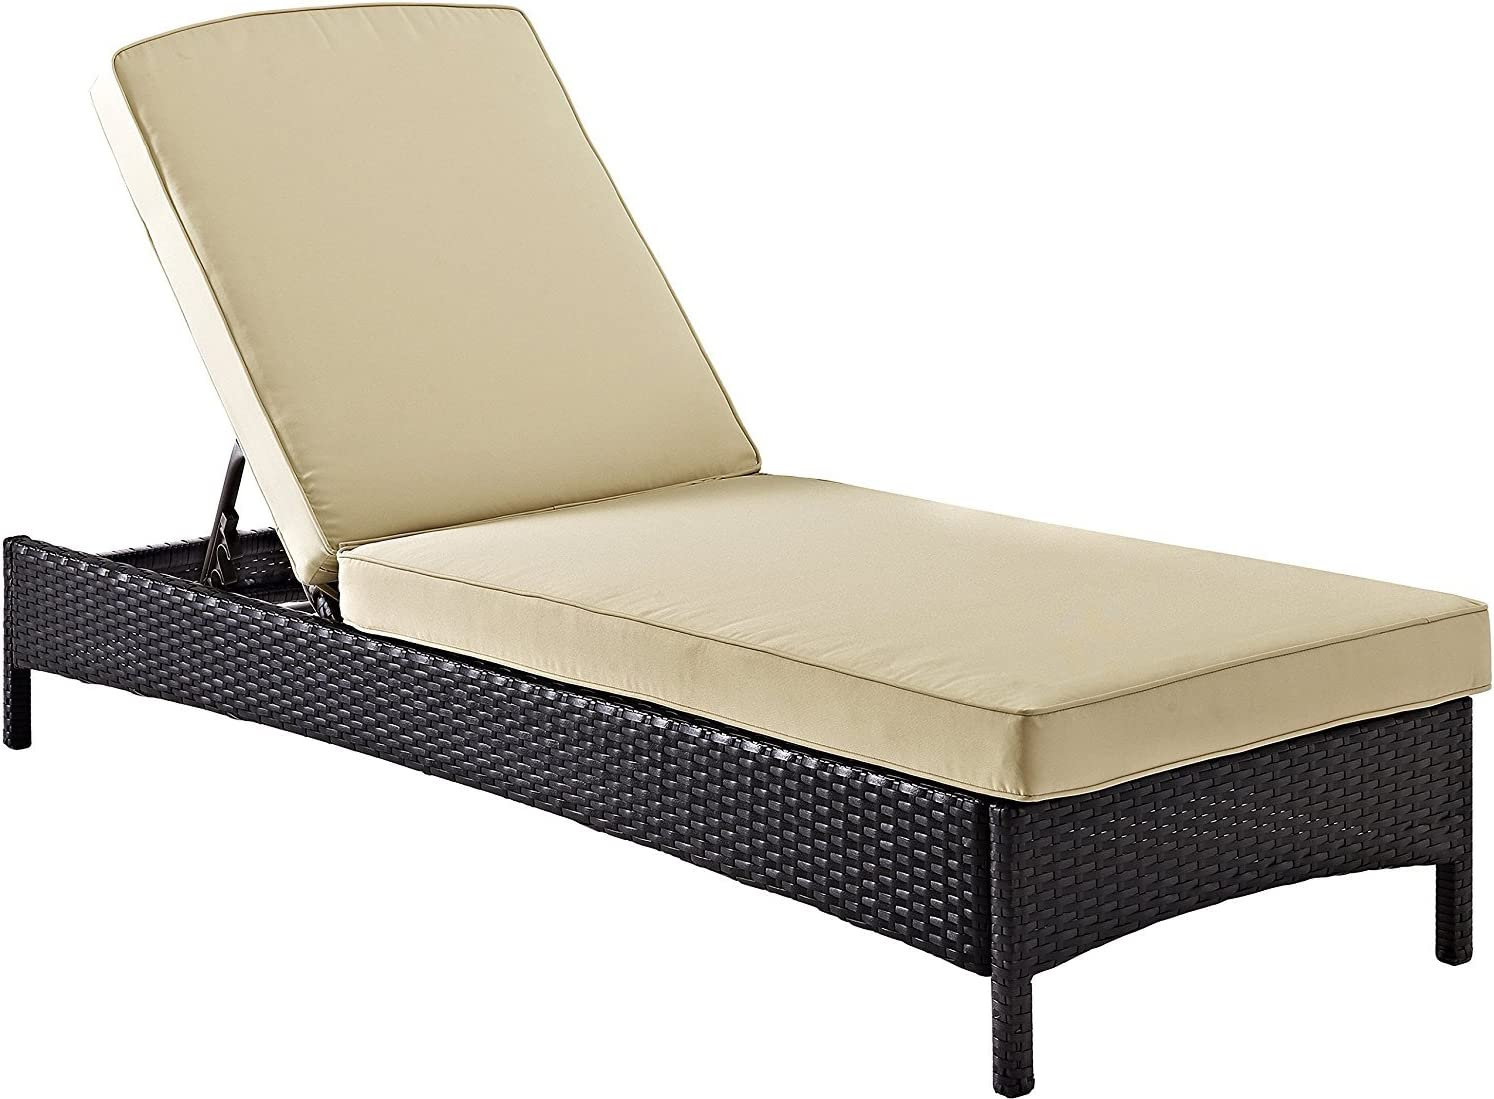 Crosley Furniture Palm Harbor Outdoor Wicker Chaise Lounge with Tan Cushions - Brown